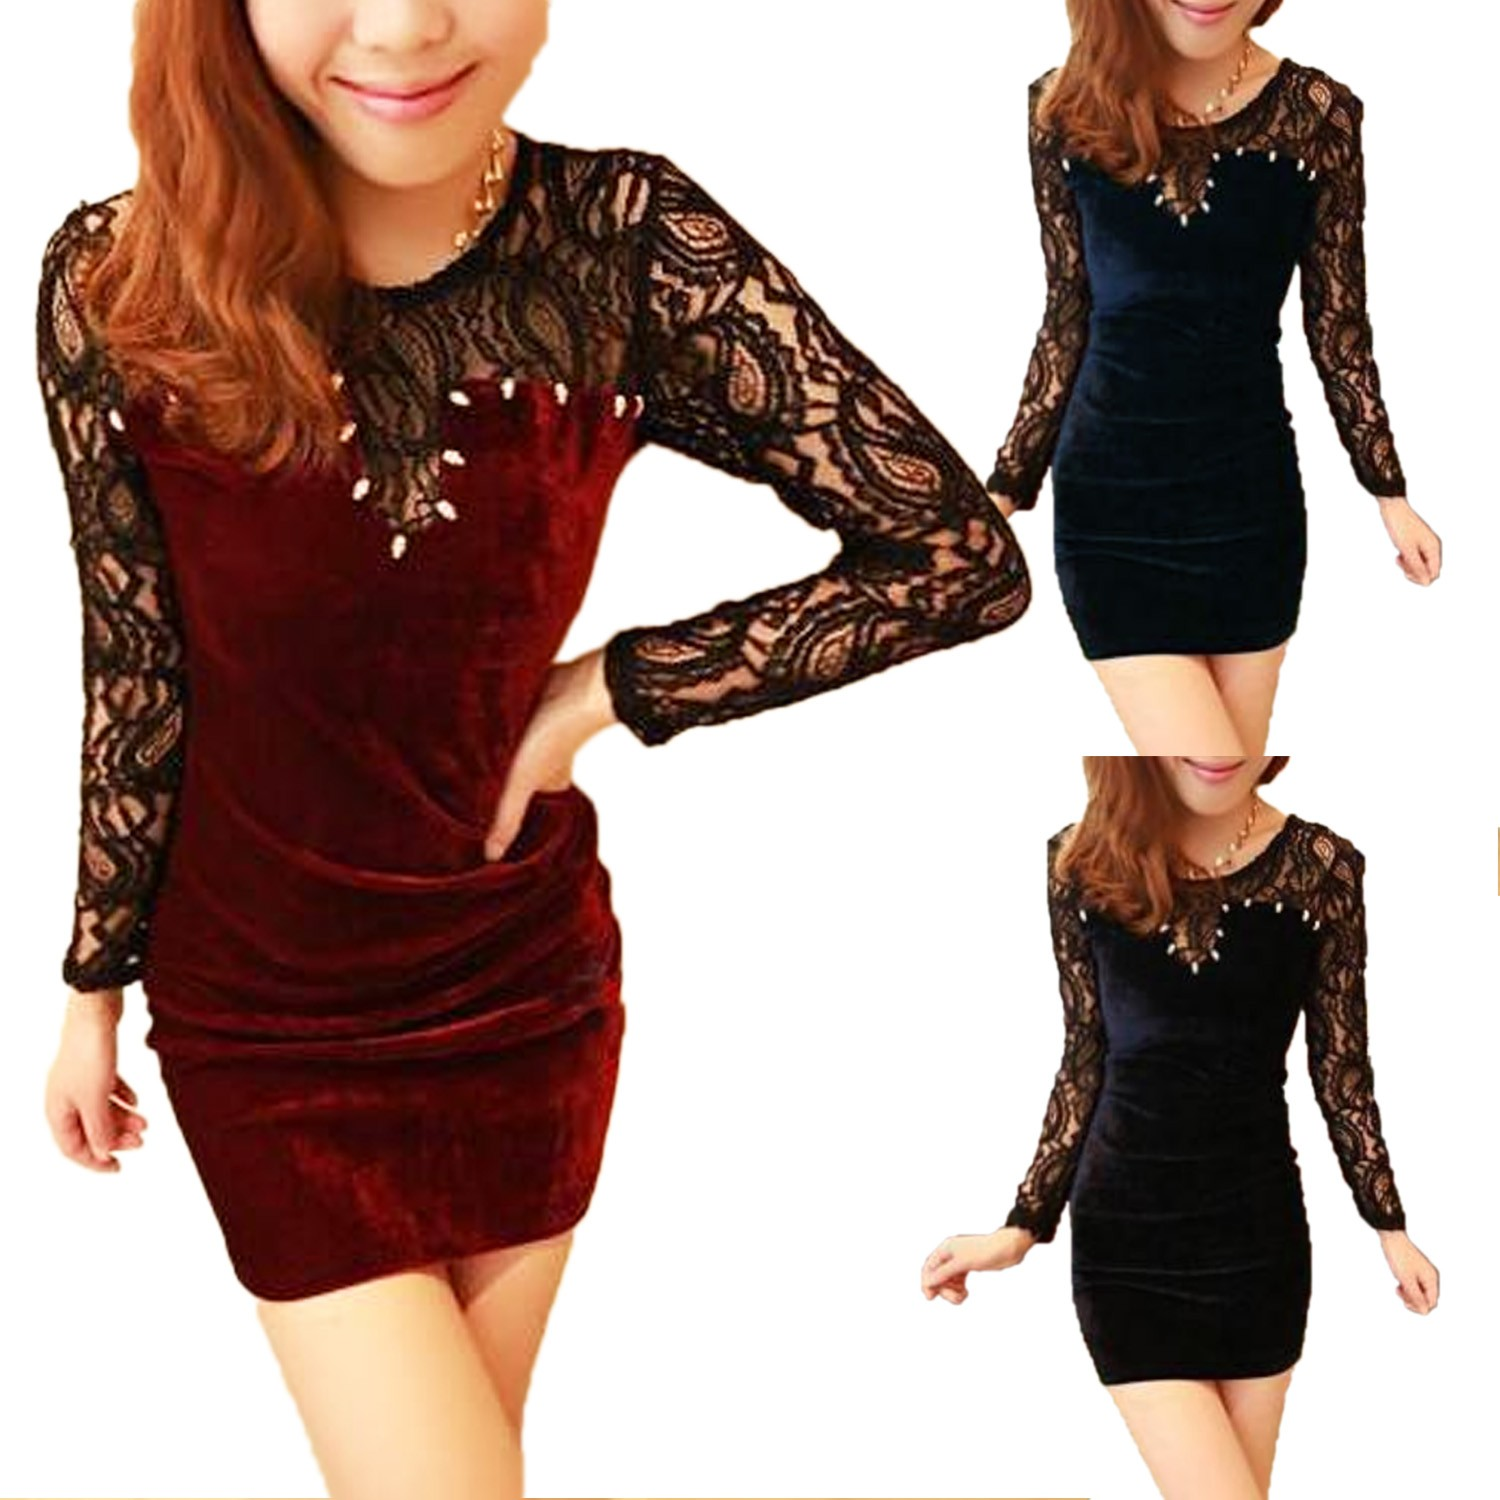 Boho Mini Lace Long Sleeve Crochet Velvet Dress AU 6 8 10 12 14 Womens Ladies